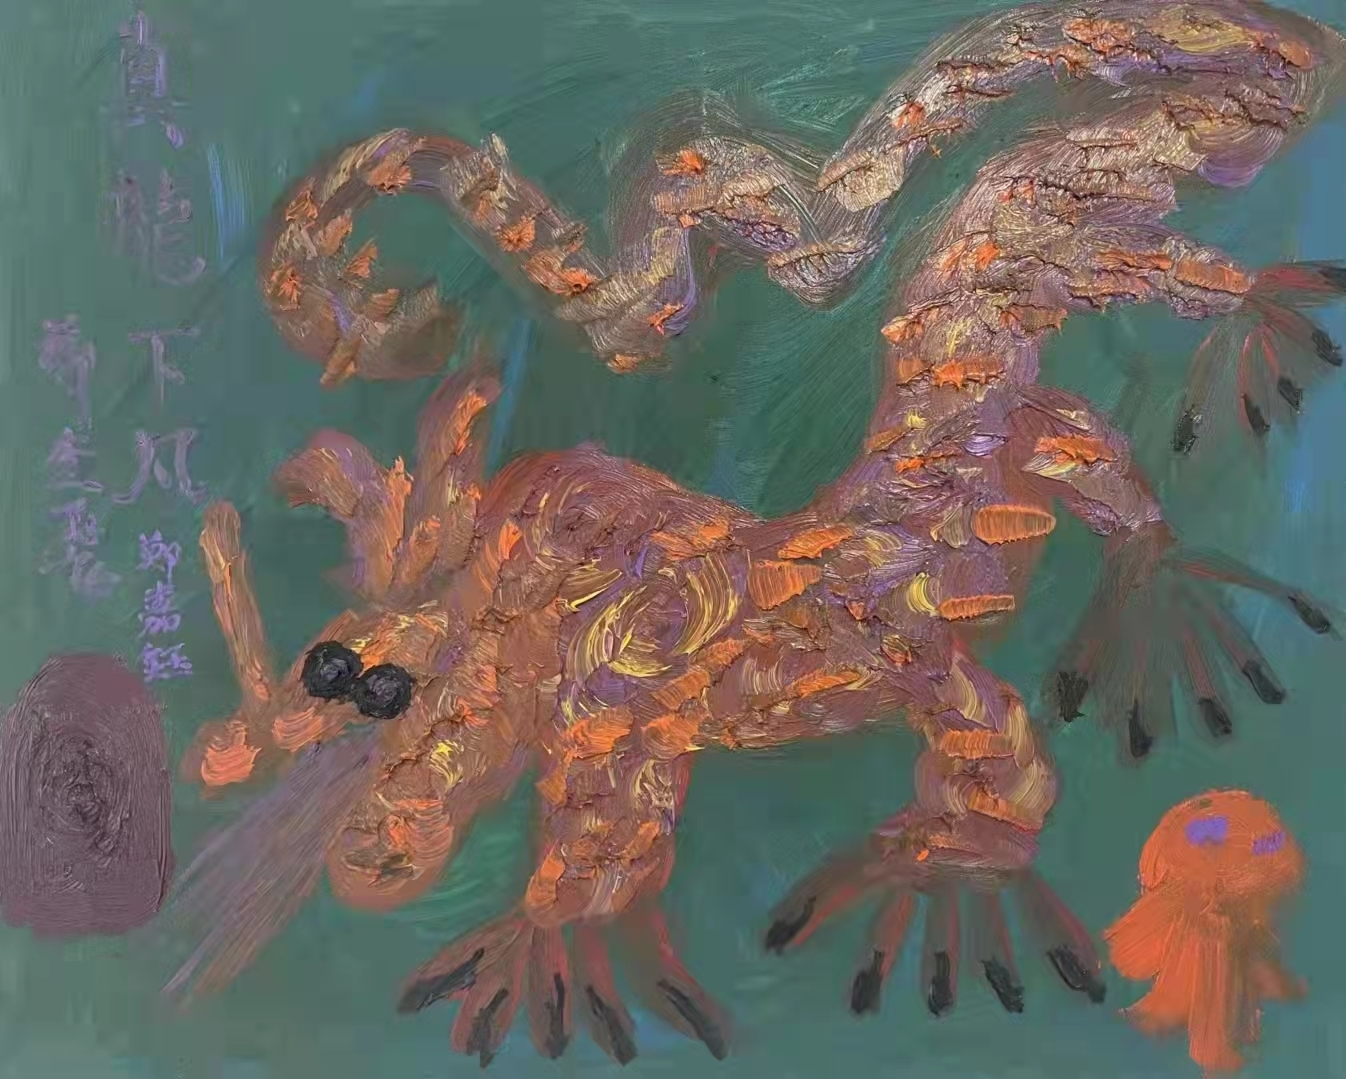 Zheng Kuifei Emerged As One Of The Four Most Valuable Post-70s Oil Painters In The World